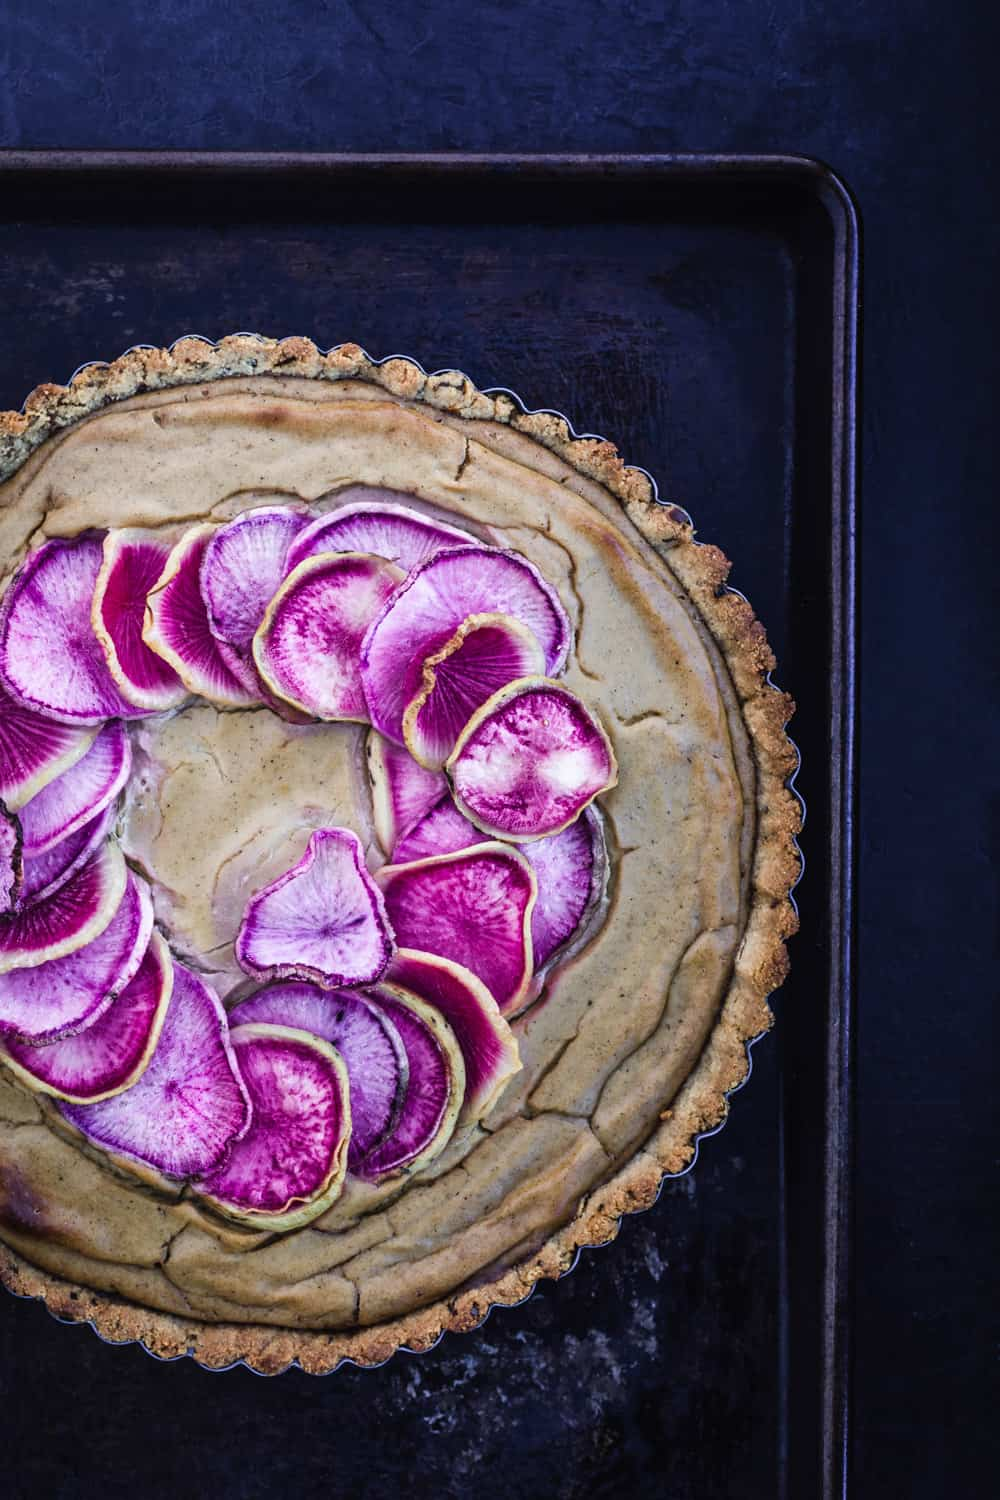 White cauliflower Tart with a Garlic & Herb Almond Crust topped with pink and purple radishes all done!